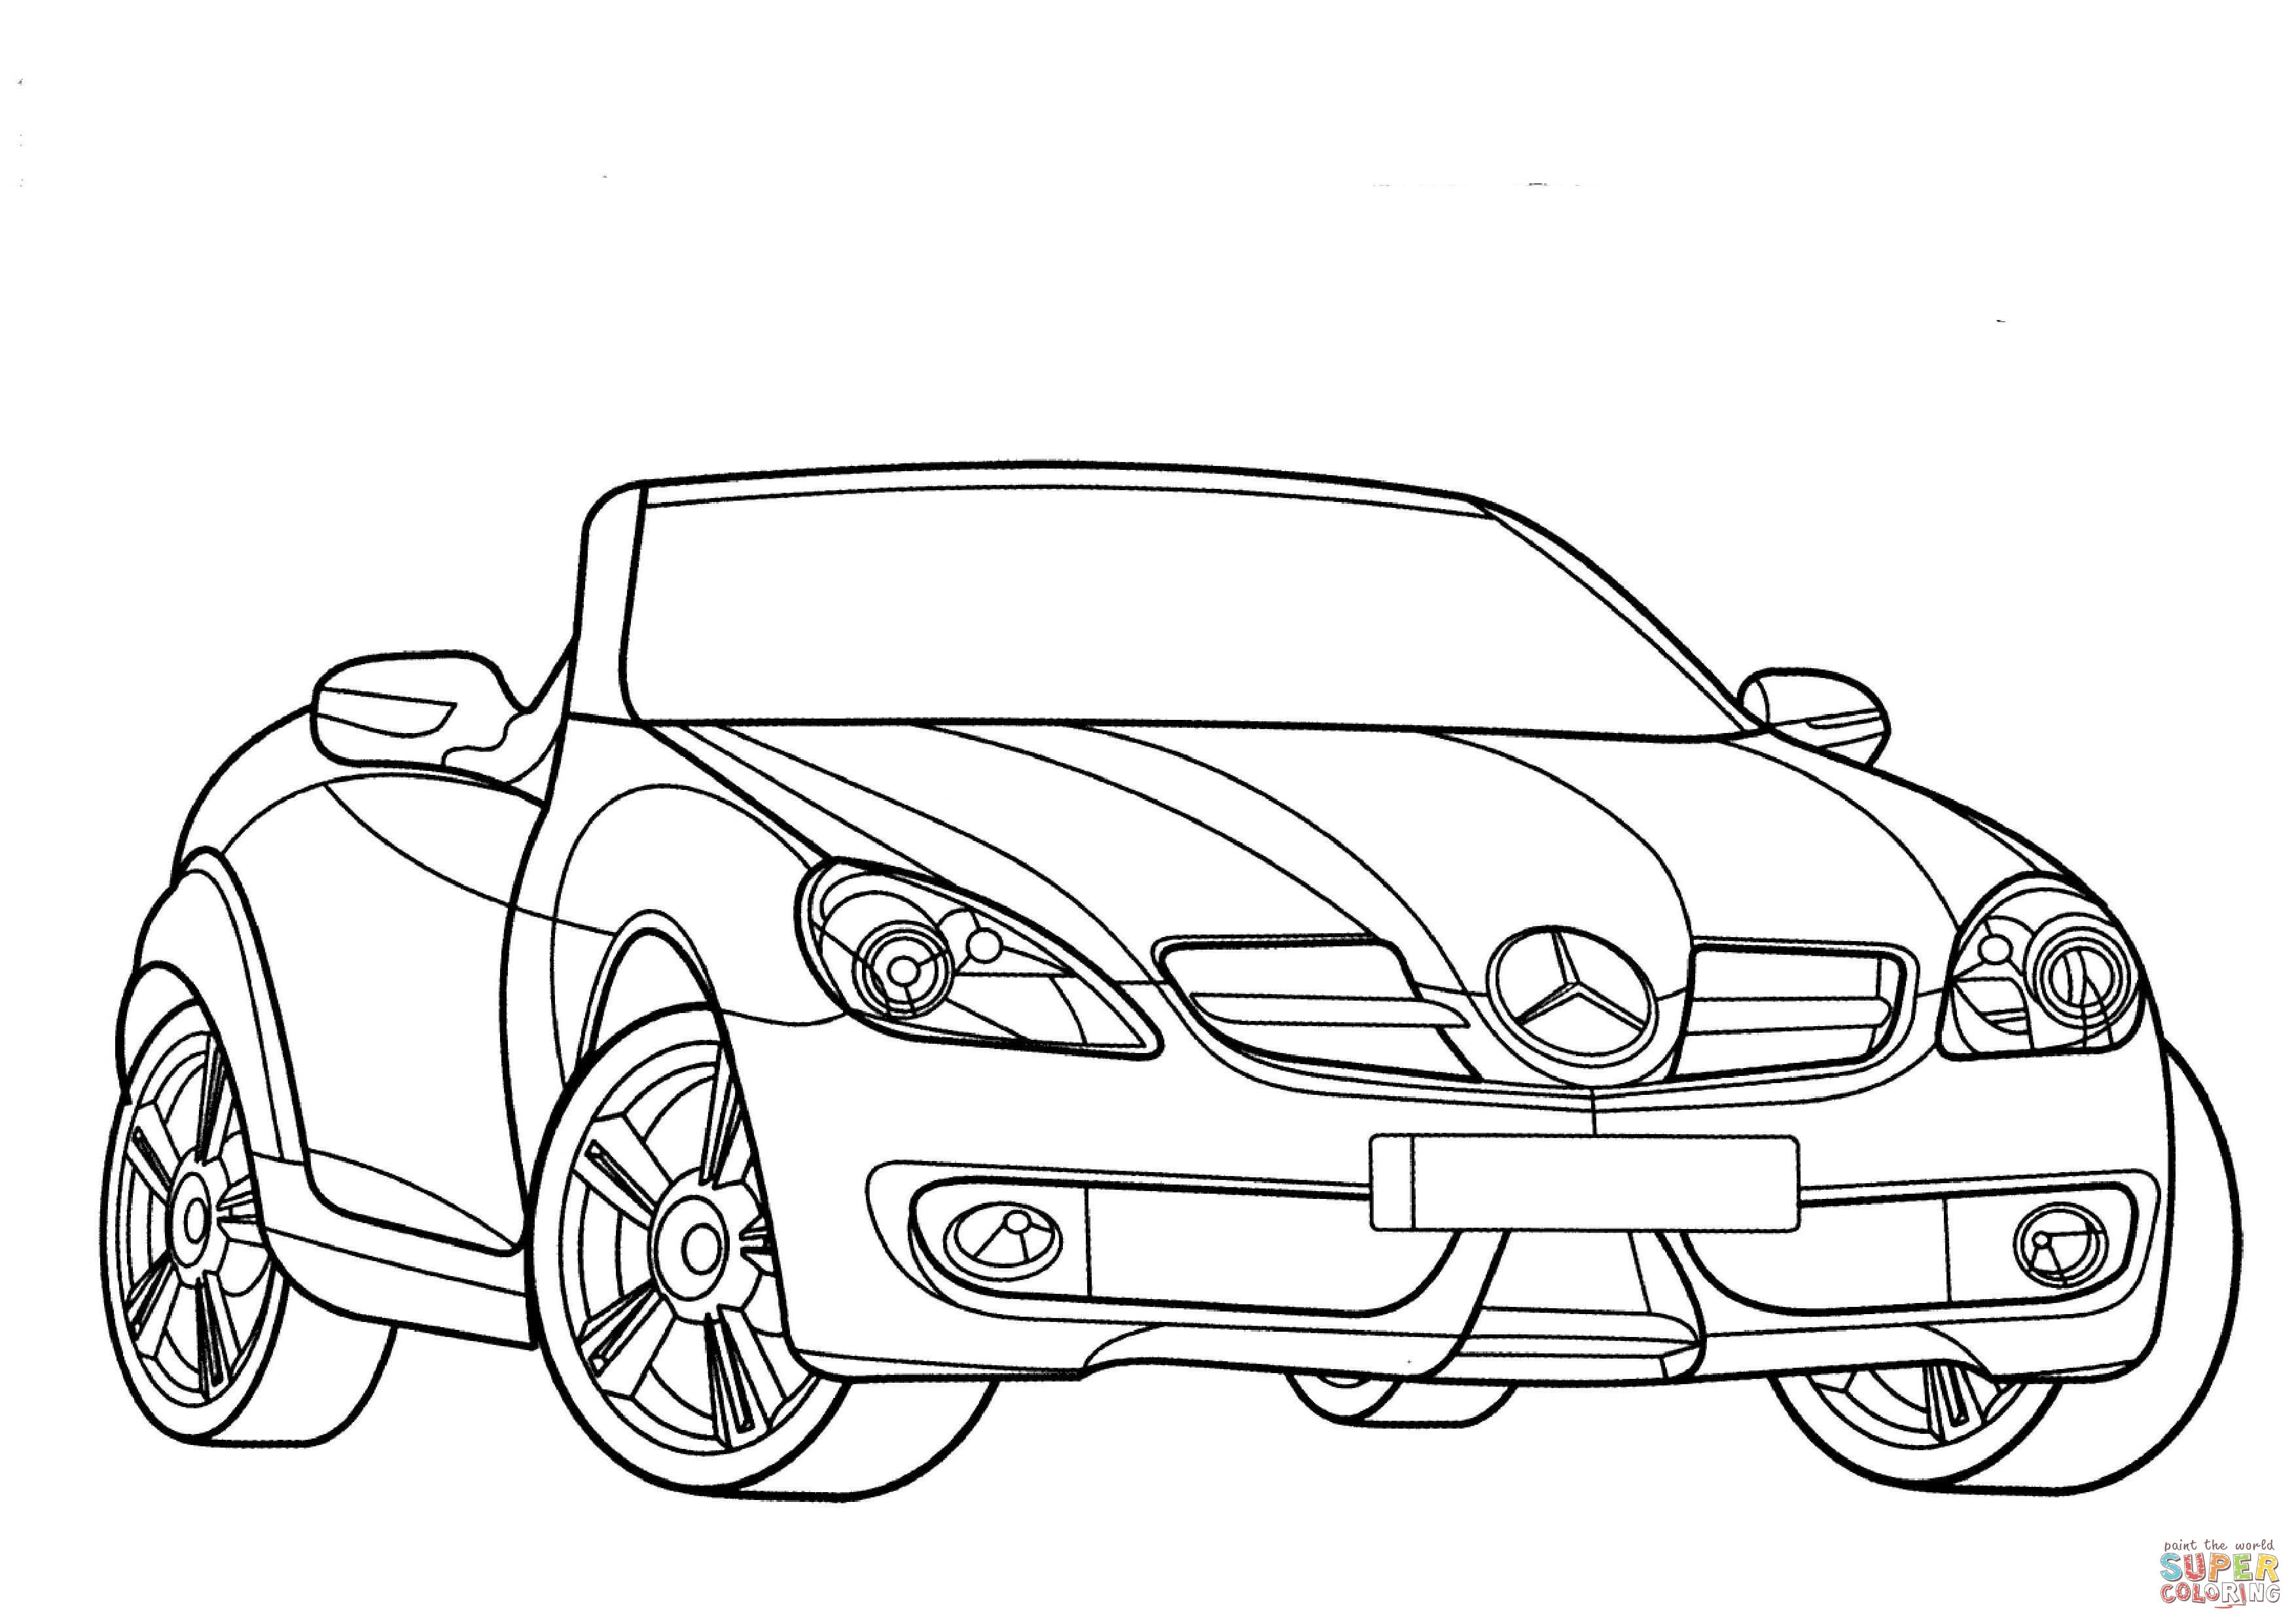 3508x2480 Mercedes Benz Slk Class Coloring Page Free Printable Coloring Pages